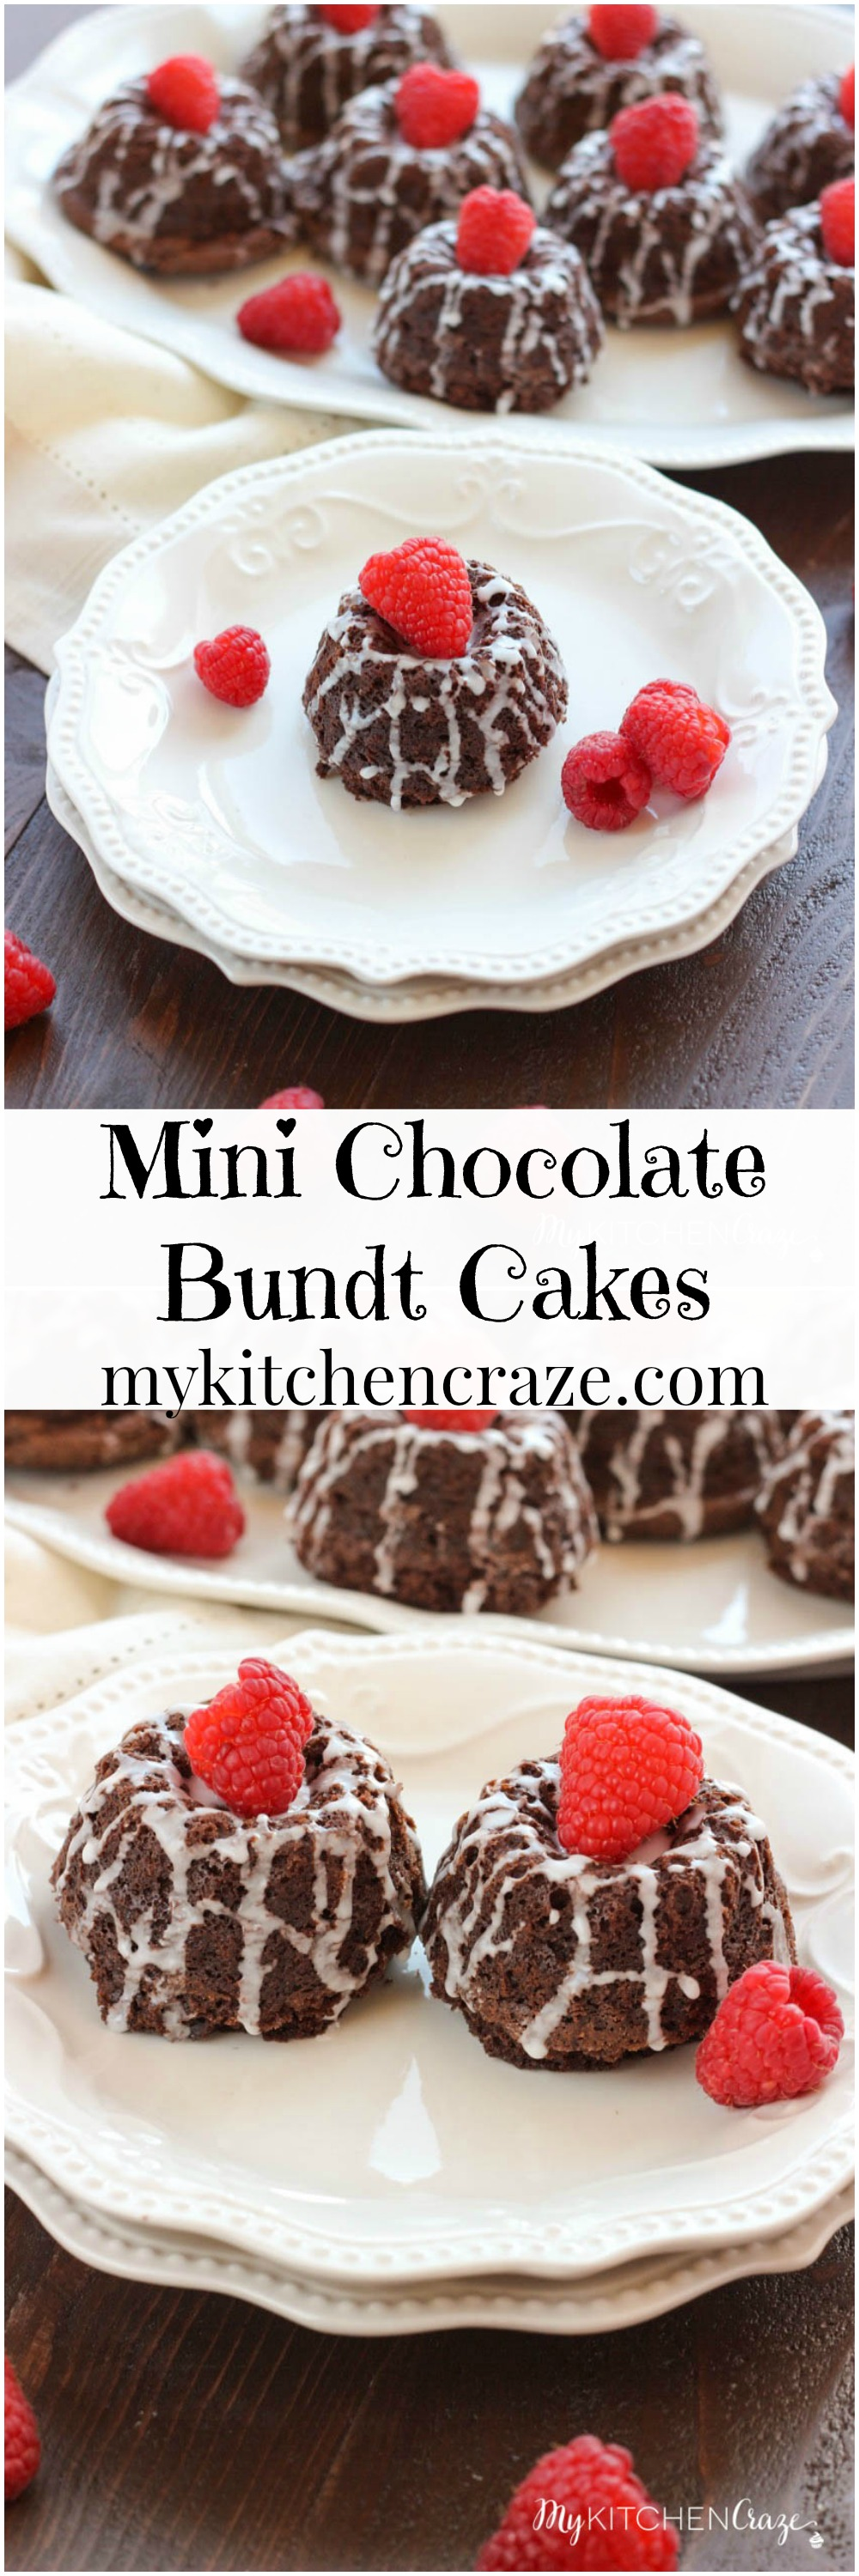 Mini Chocolate Bundt Cakes ~ mykitchencraze.com ~ Moist chocolate cake topped off with a vanilla glaze and raspberry. Perfect for a special gathering or any occasion.